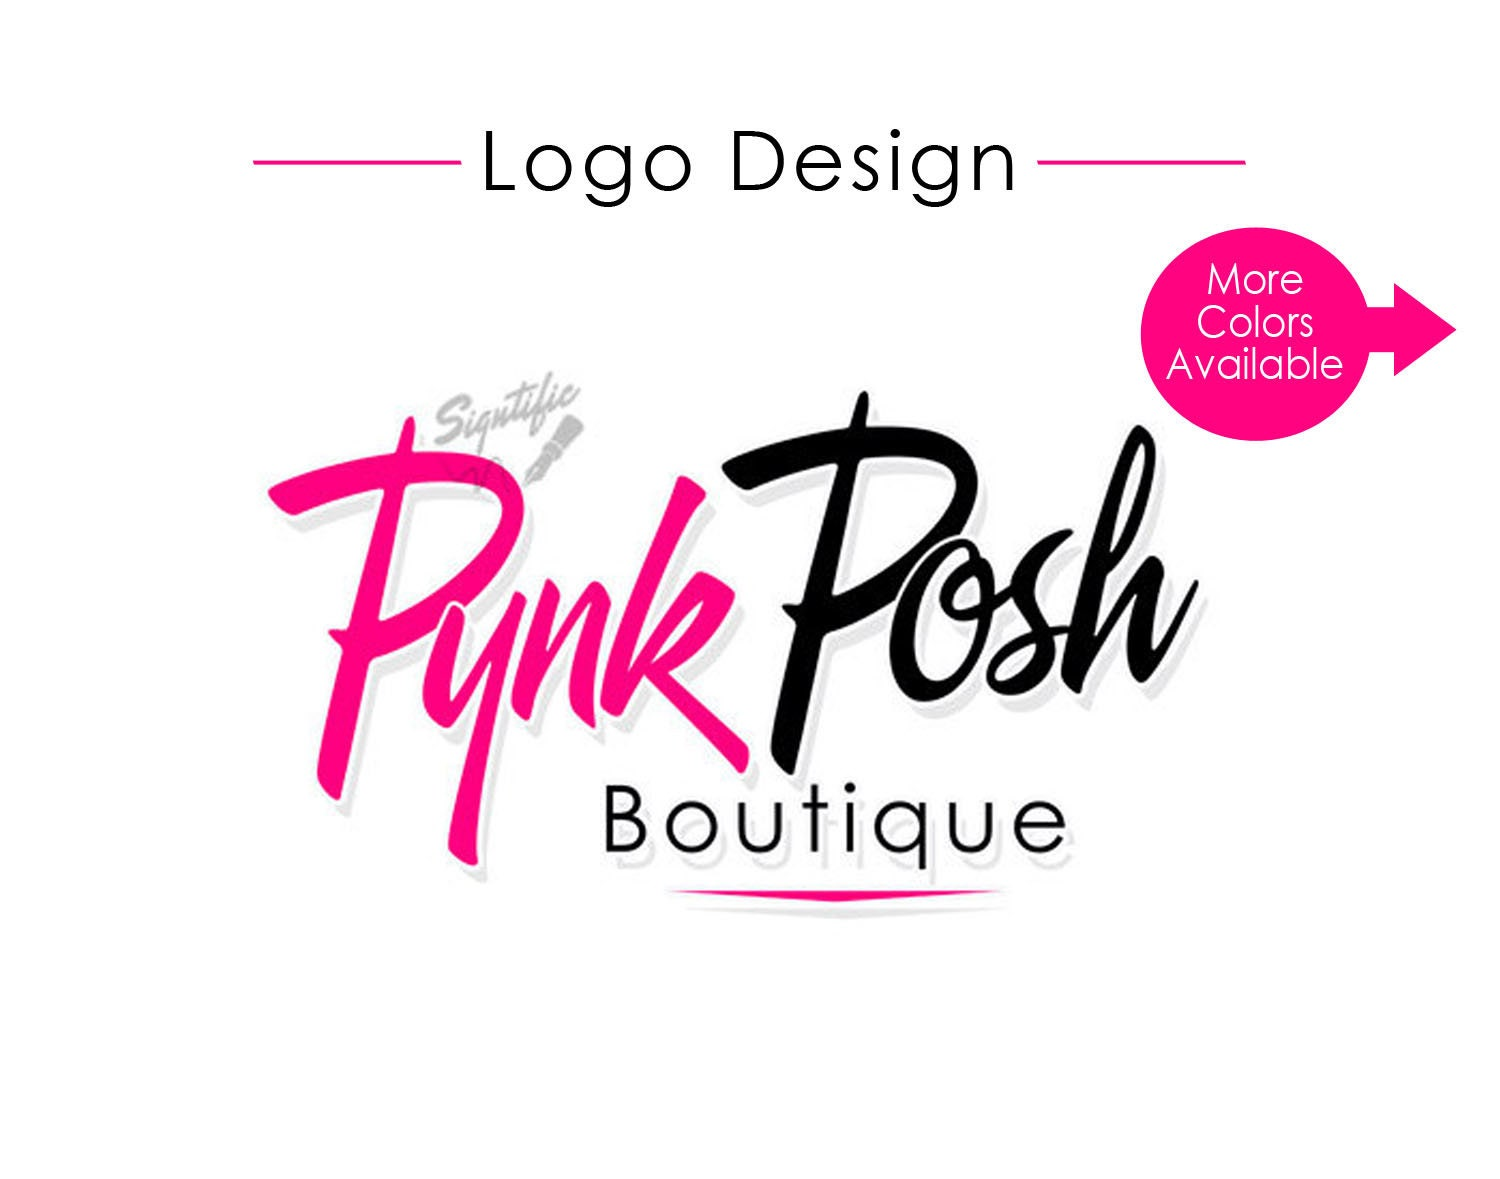 Boutique Logo Design Free | www.imgkid.com - The Image Kid ...